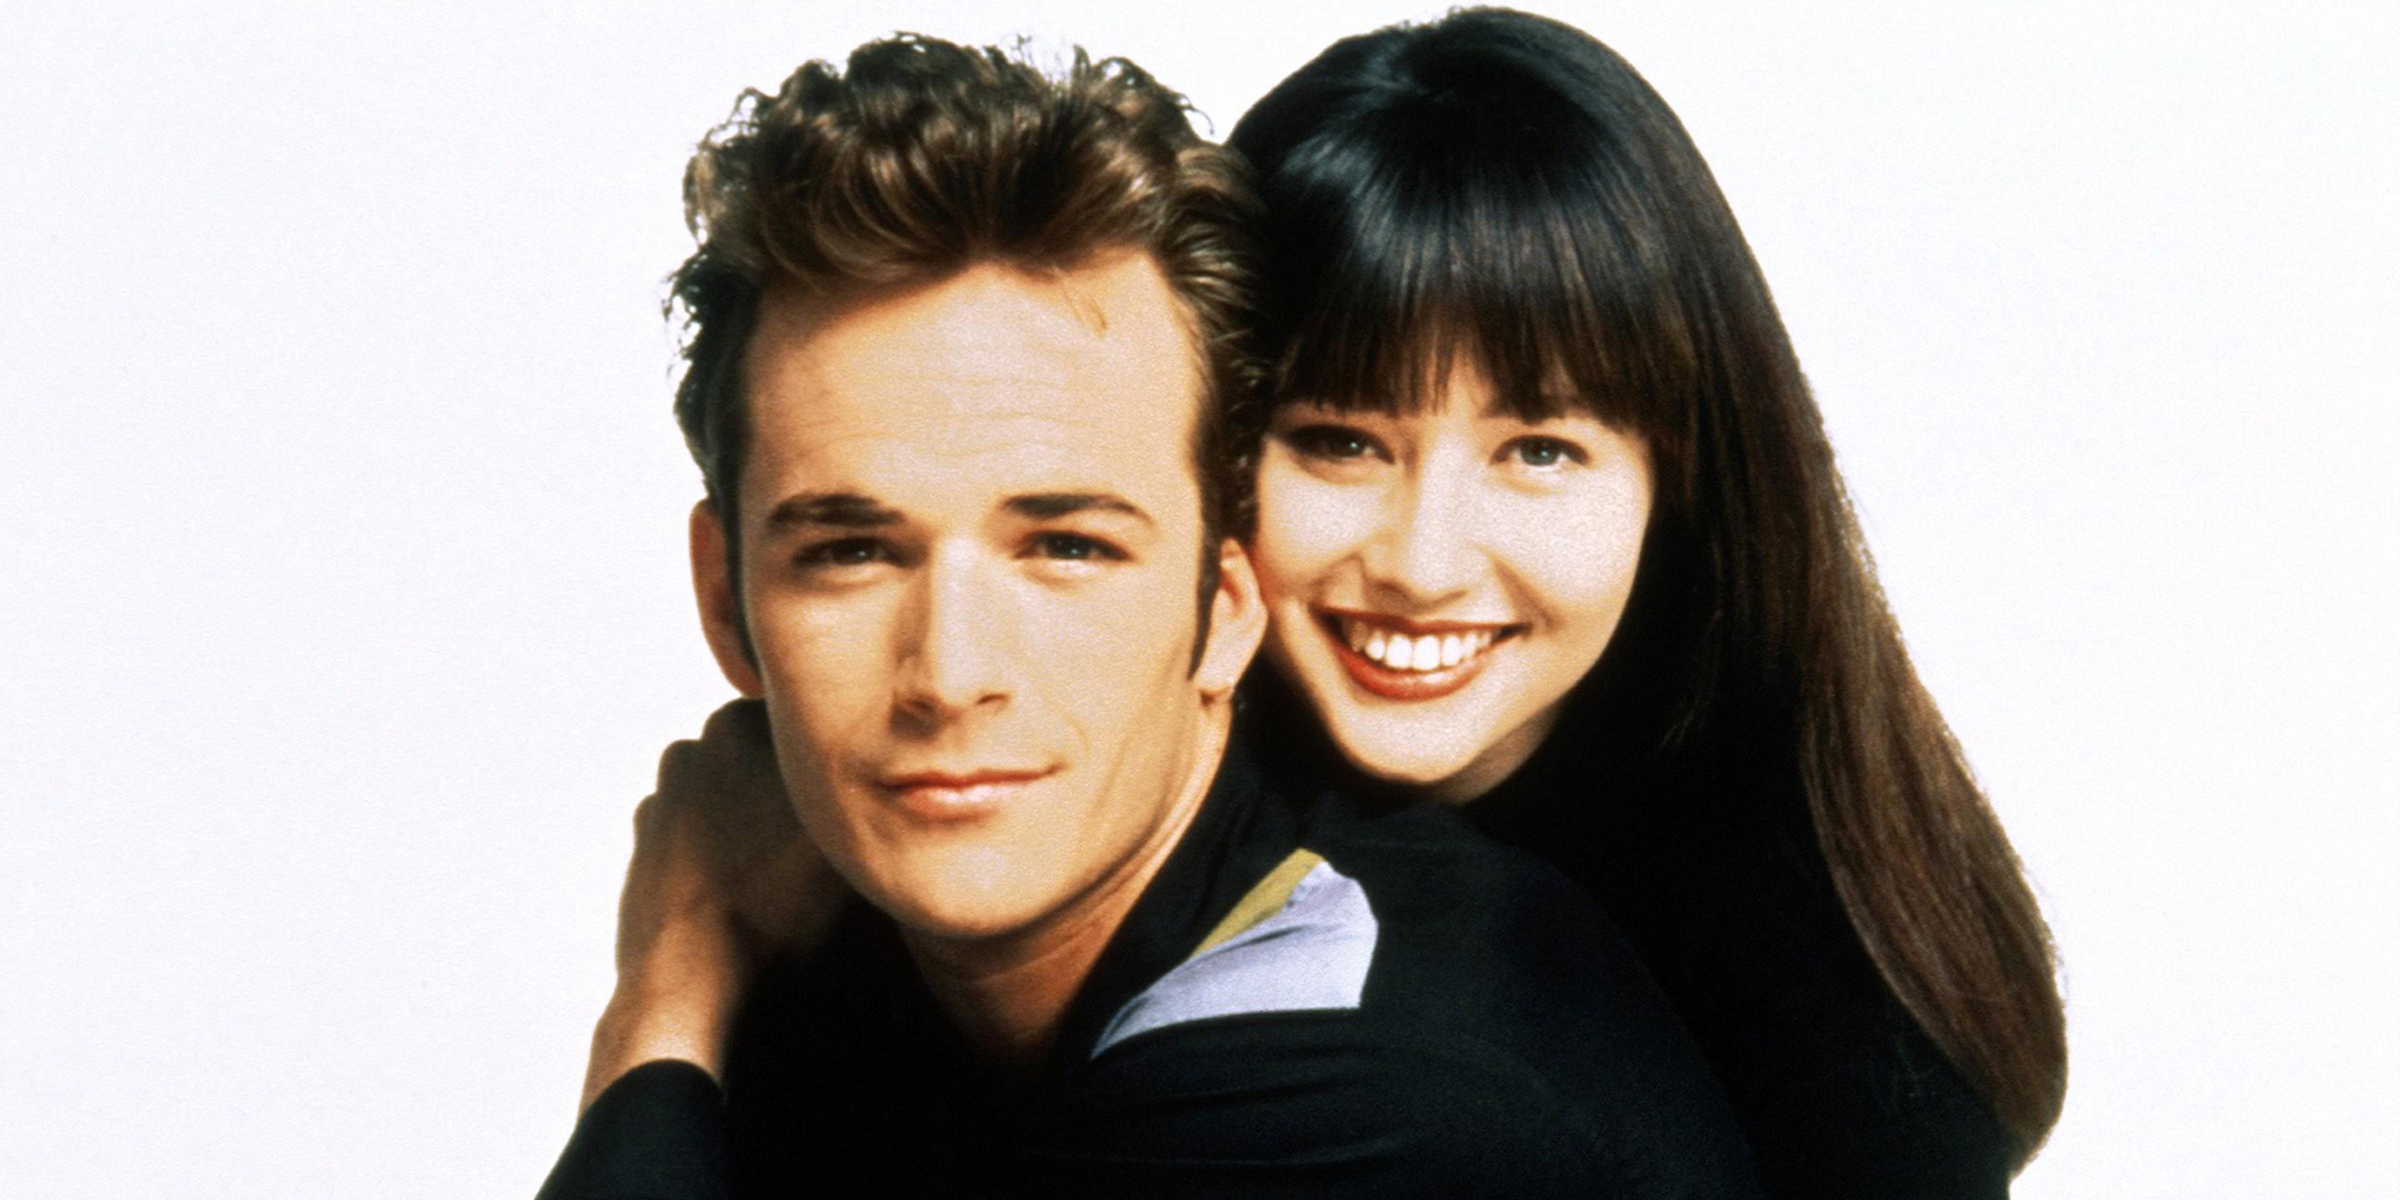 Shannen Doherty comments on Luke Perry's health: 'He's my Dylan'